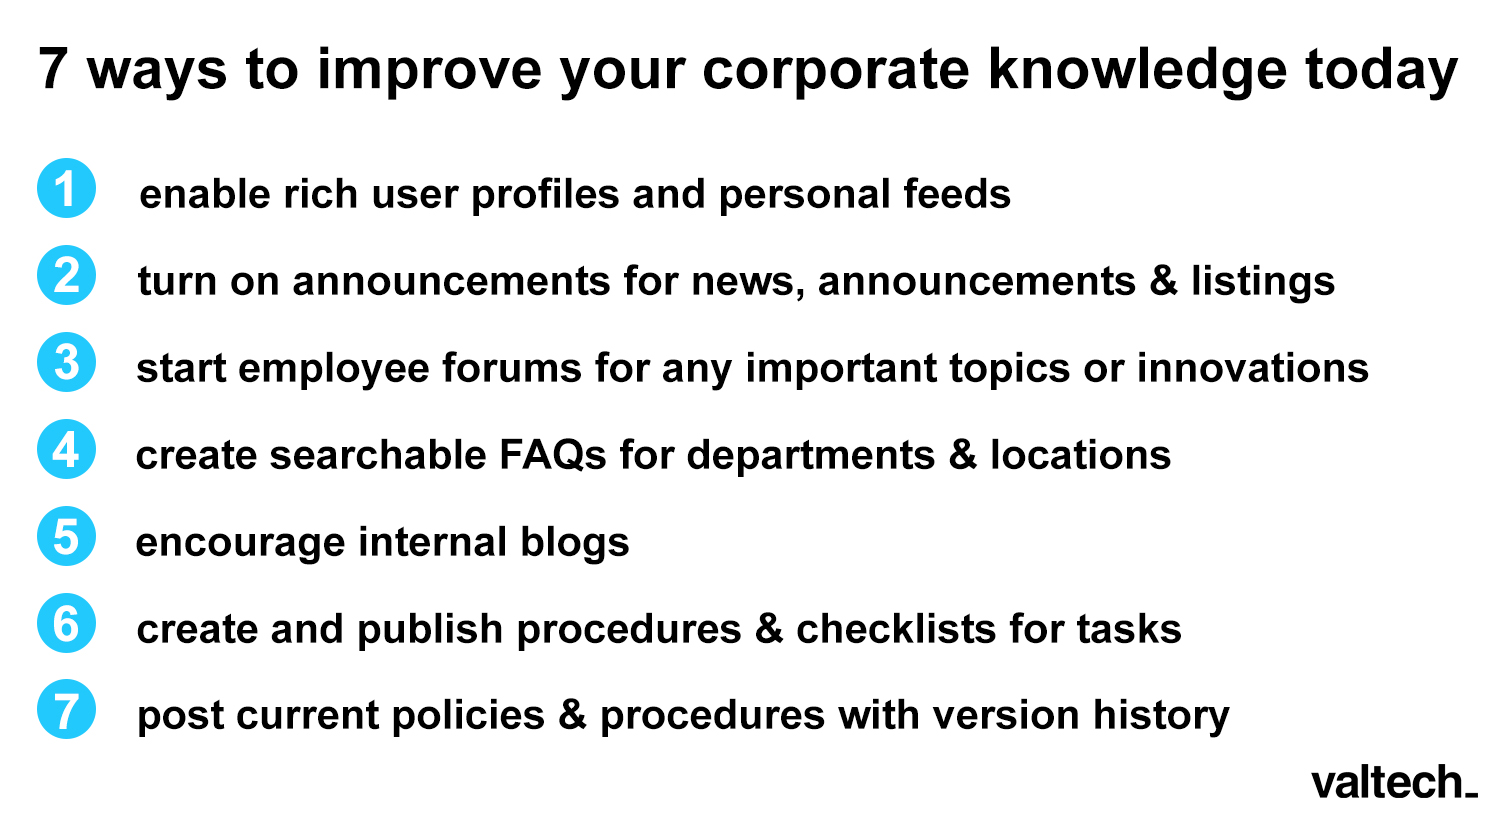 7-ways-to-improve-your-corporate-knowledge-today.jpg